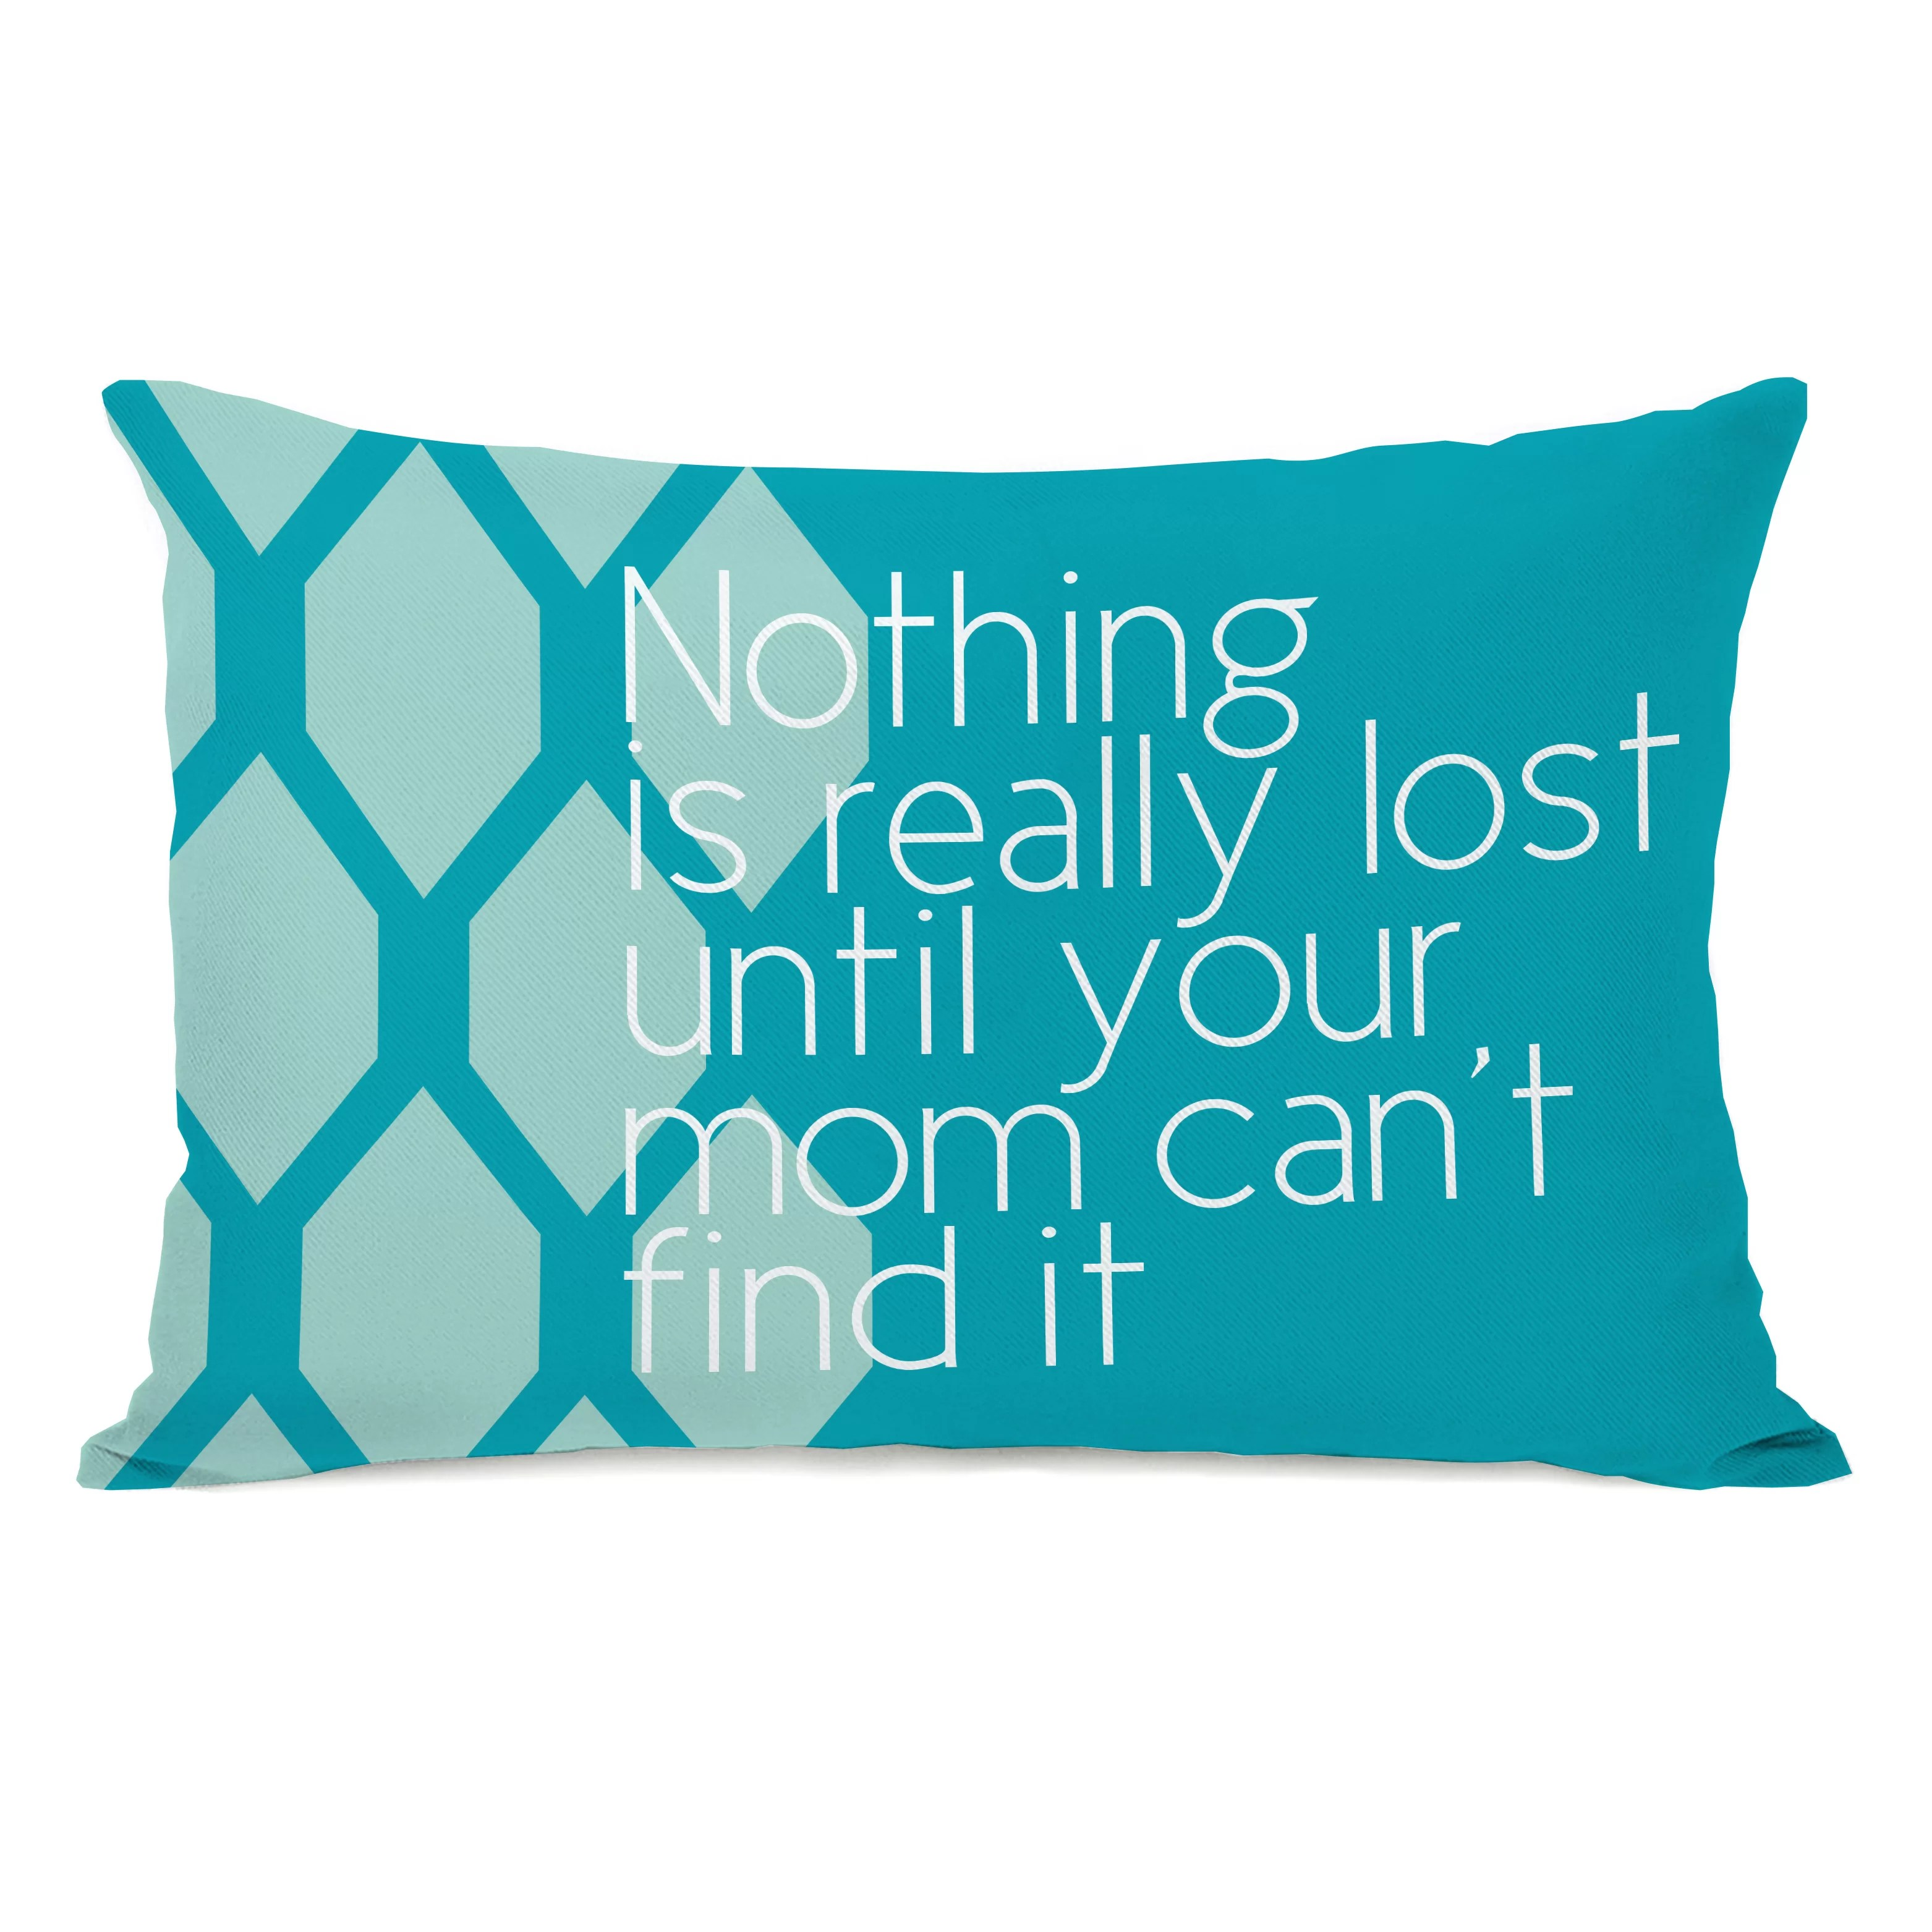 nothing is really lost lumbar throw pillow